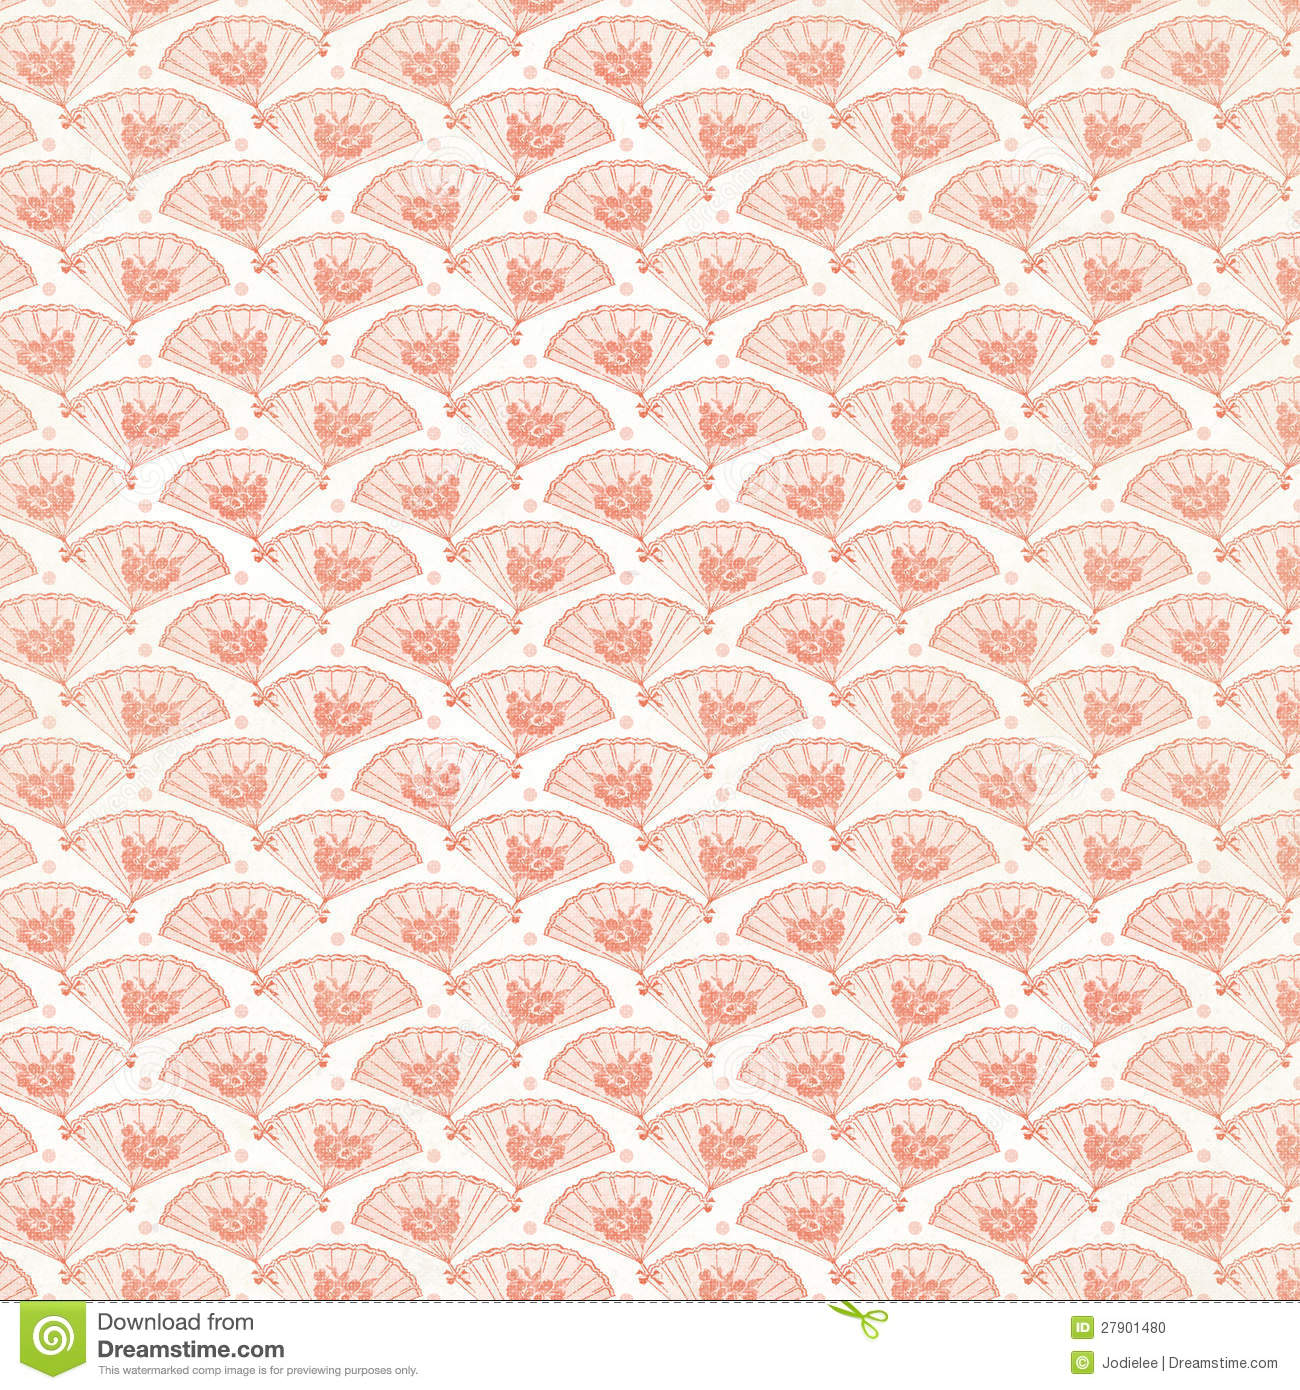 vintage repeating wallpaper - photo #36